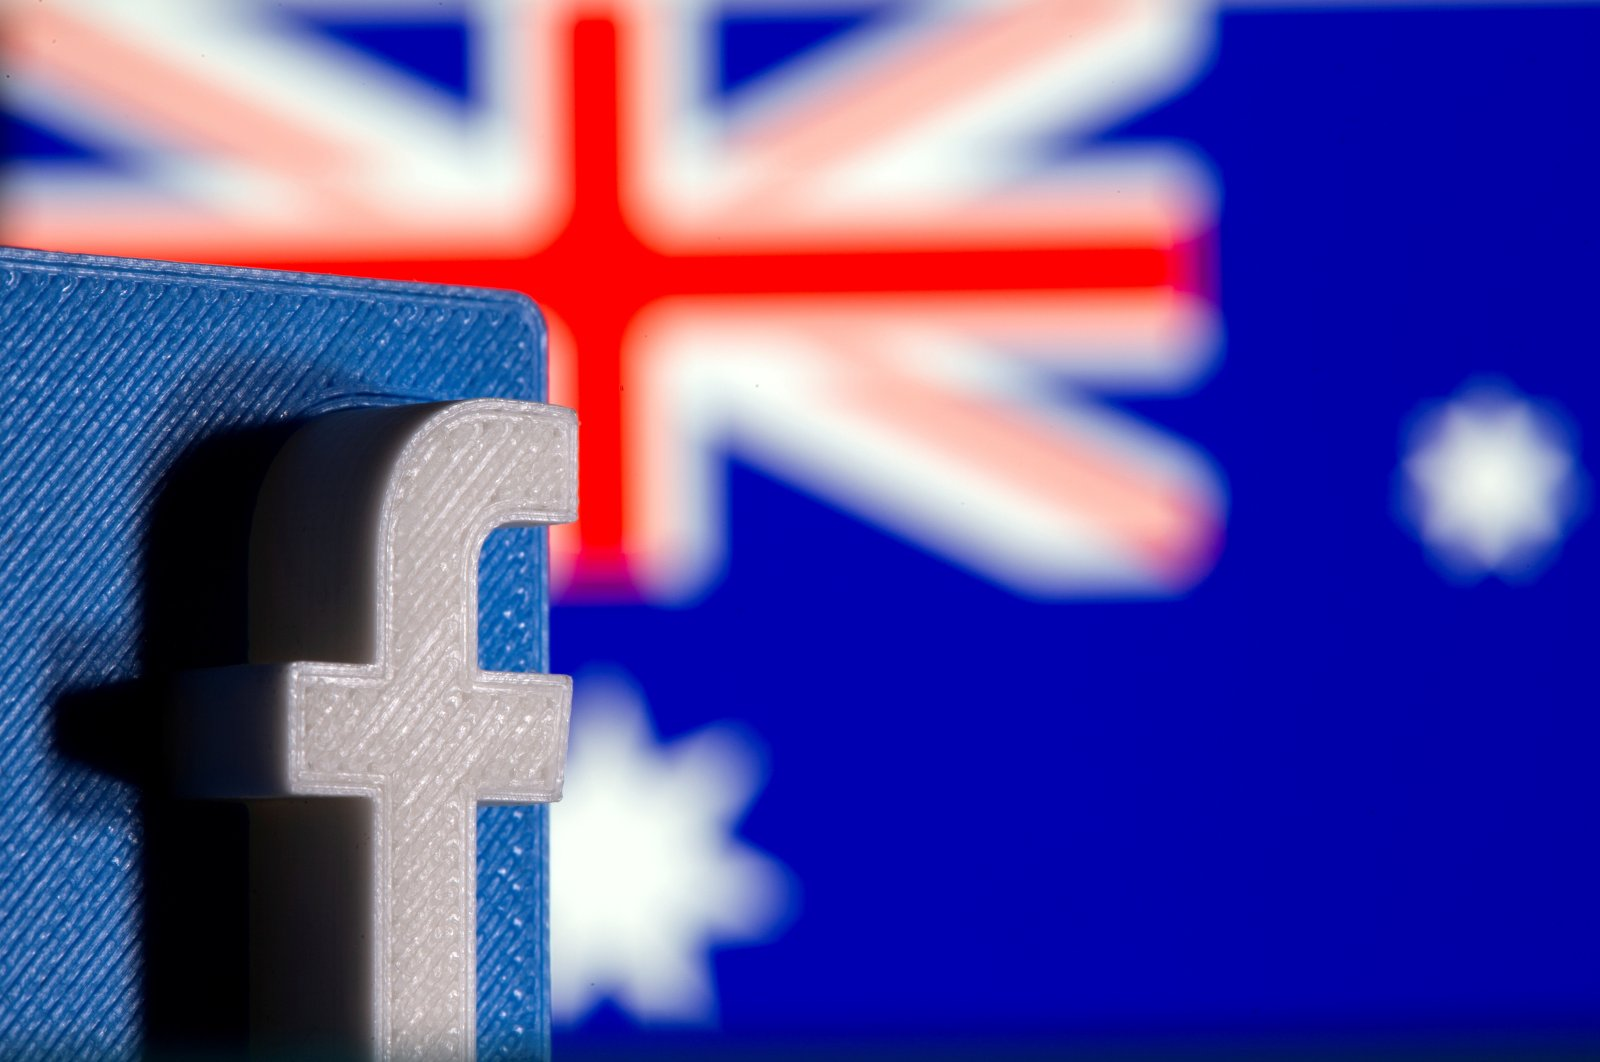 A 3D printed Facebook logo is seen in front of the displayed Australia's flag in this illustration photo taken Feb. 18, 2021. (Reuters Photo)